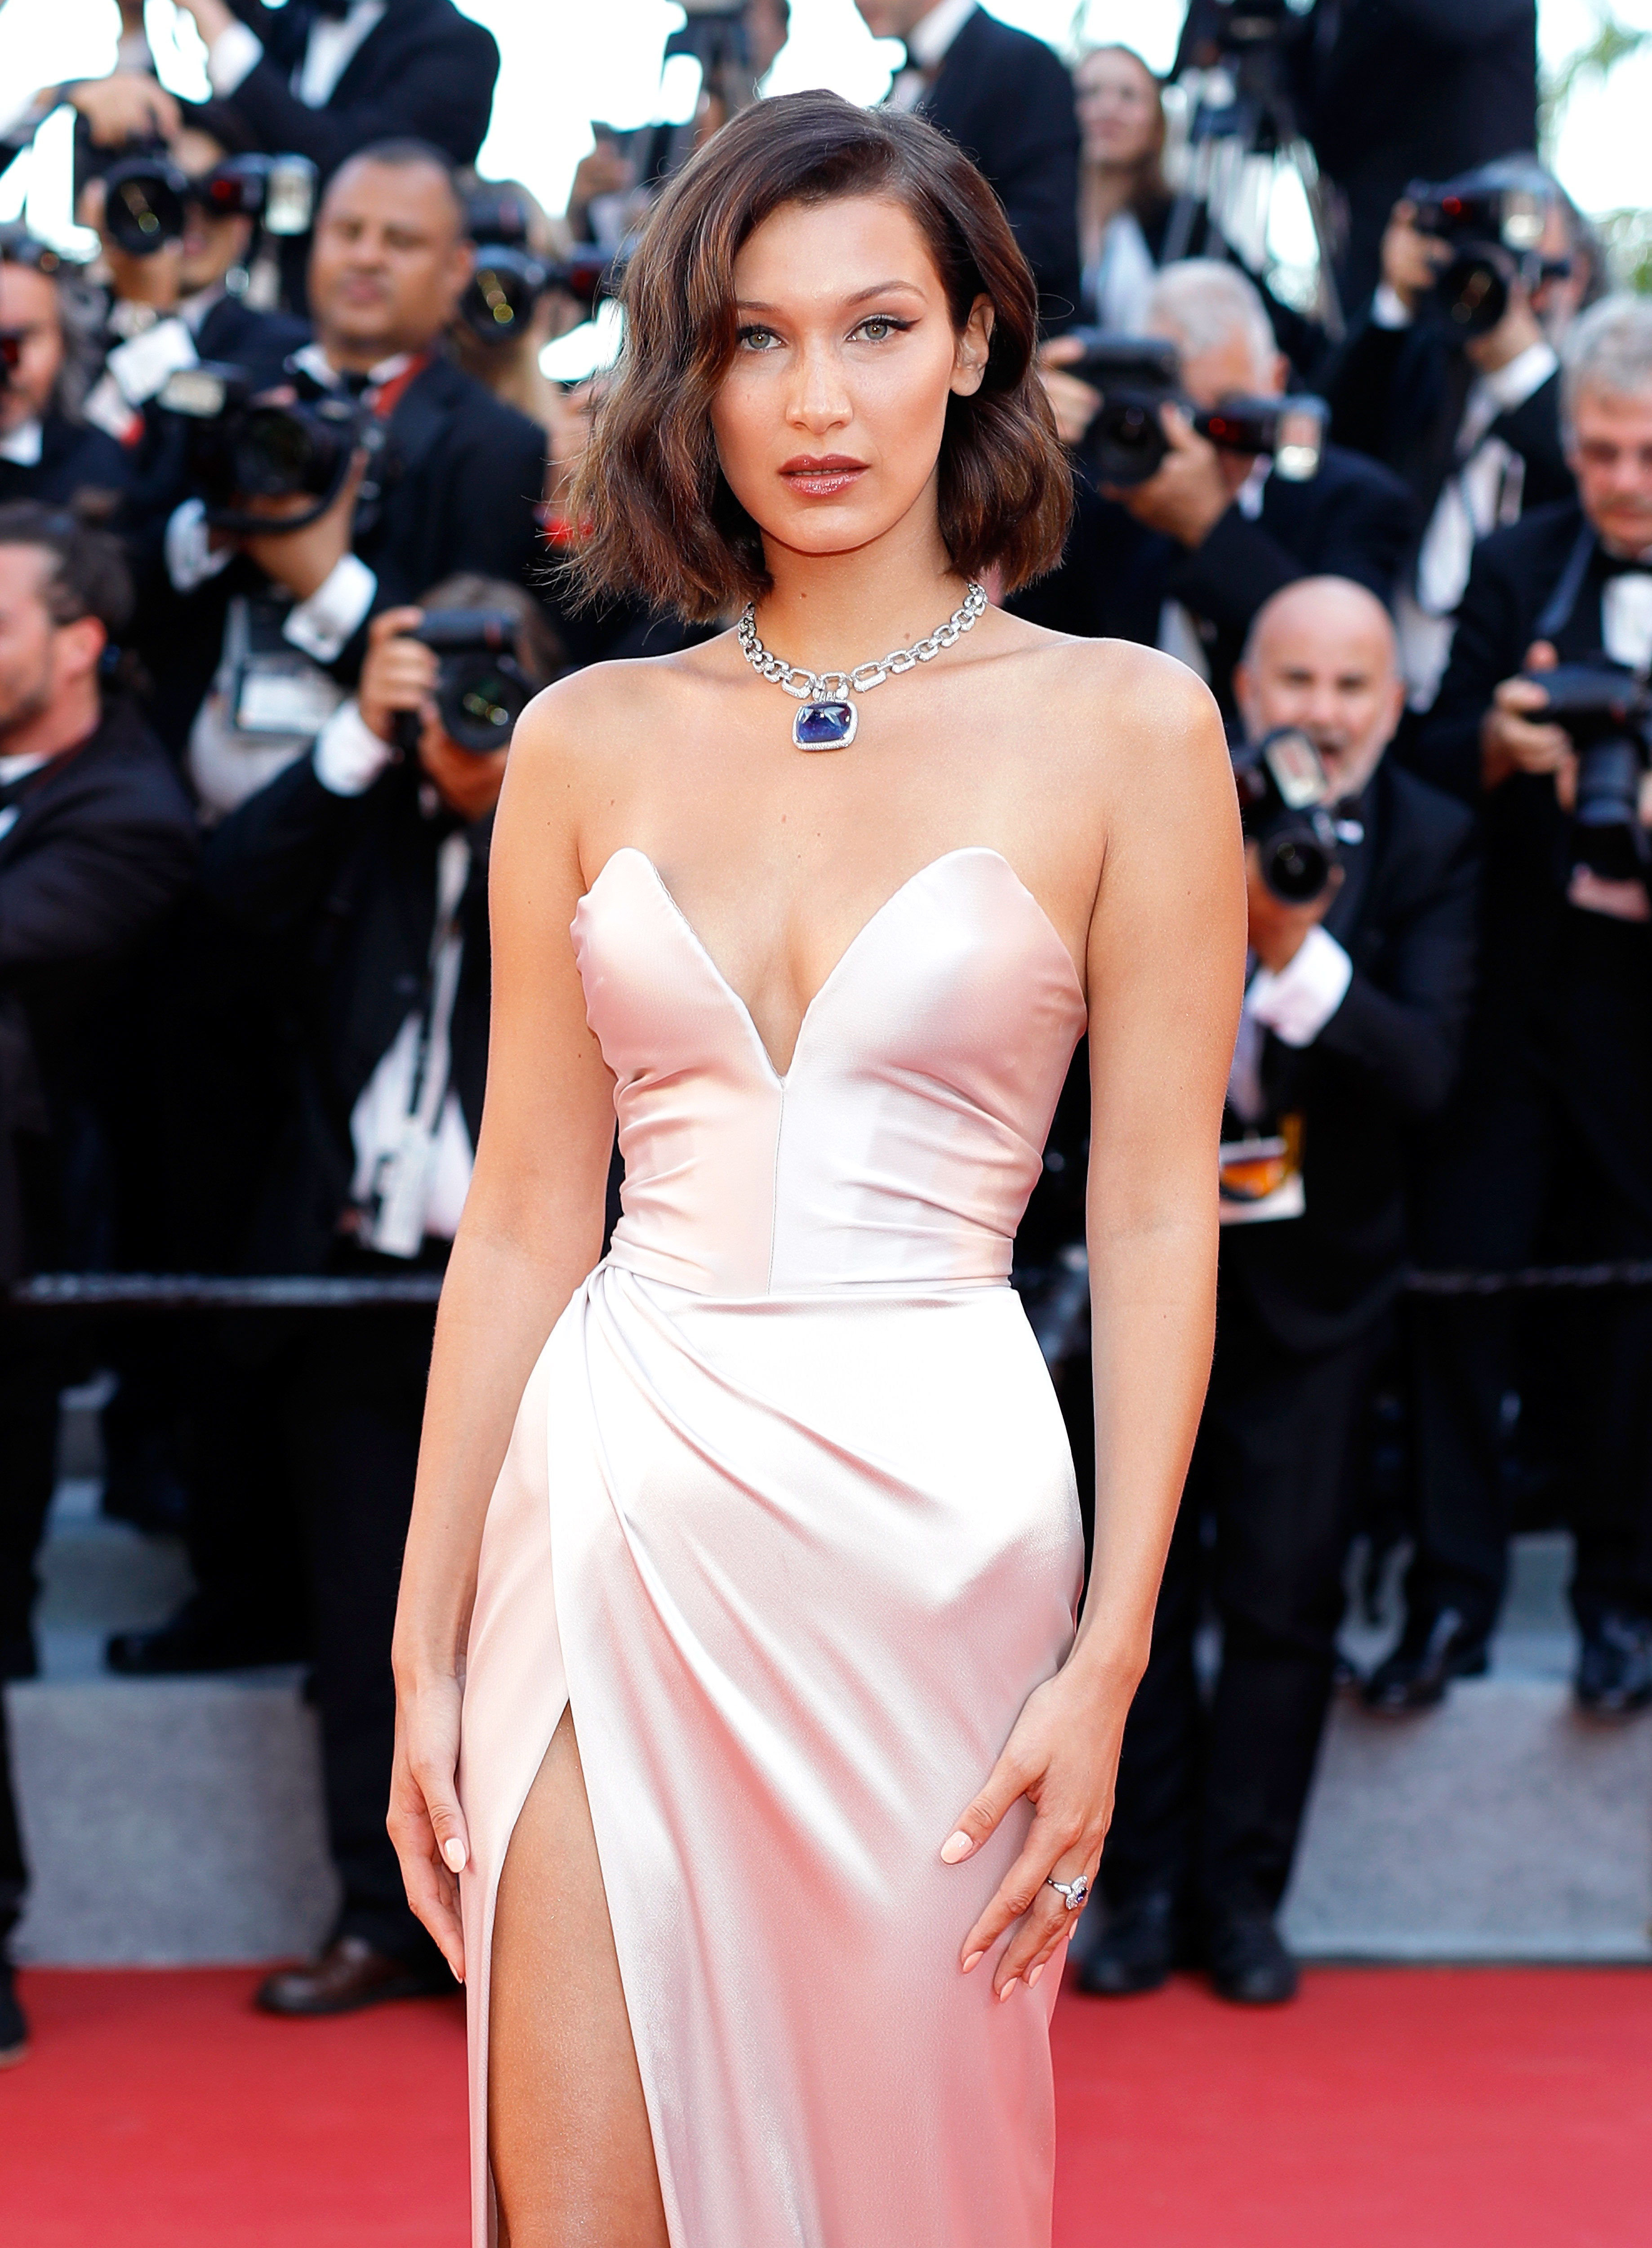 Bella Hadid Suffers Wardrobe Malfunction at Cannes Two ...